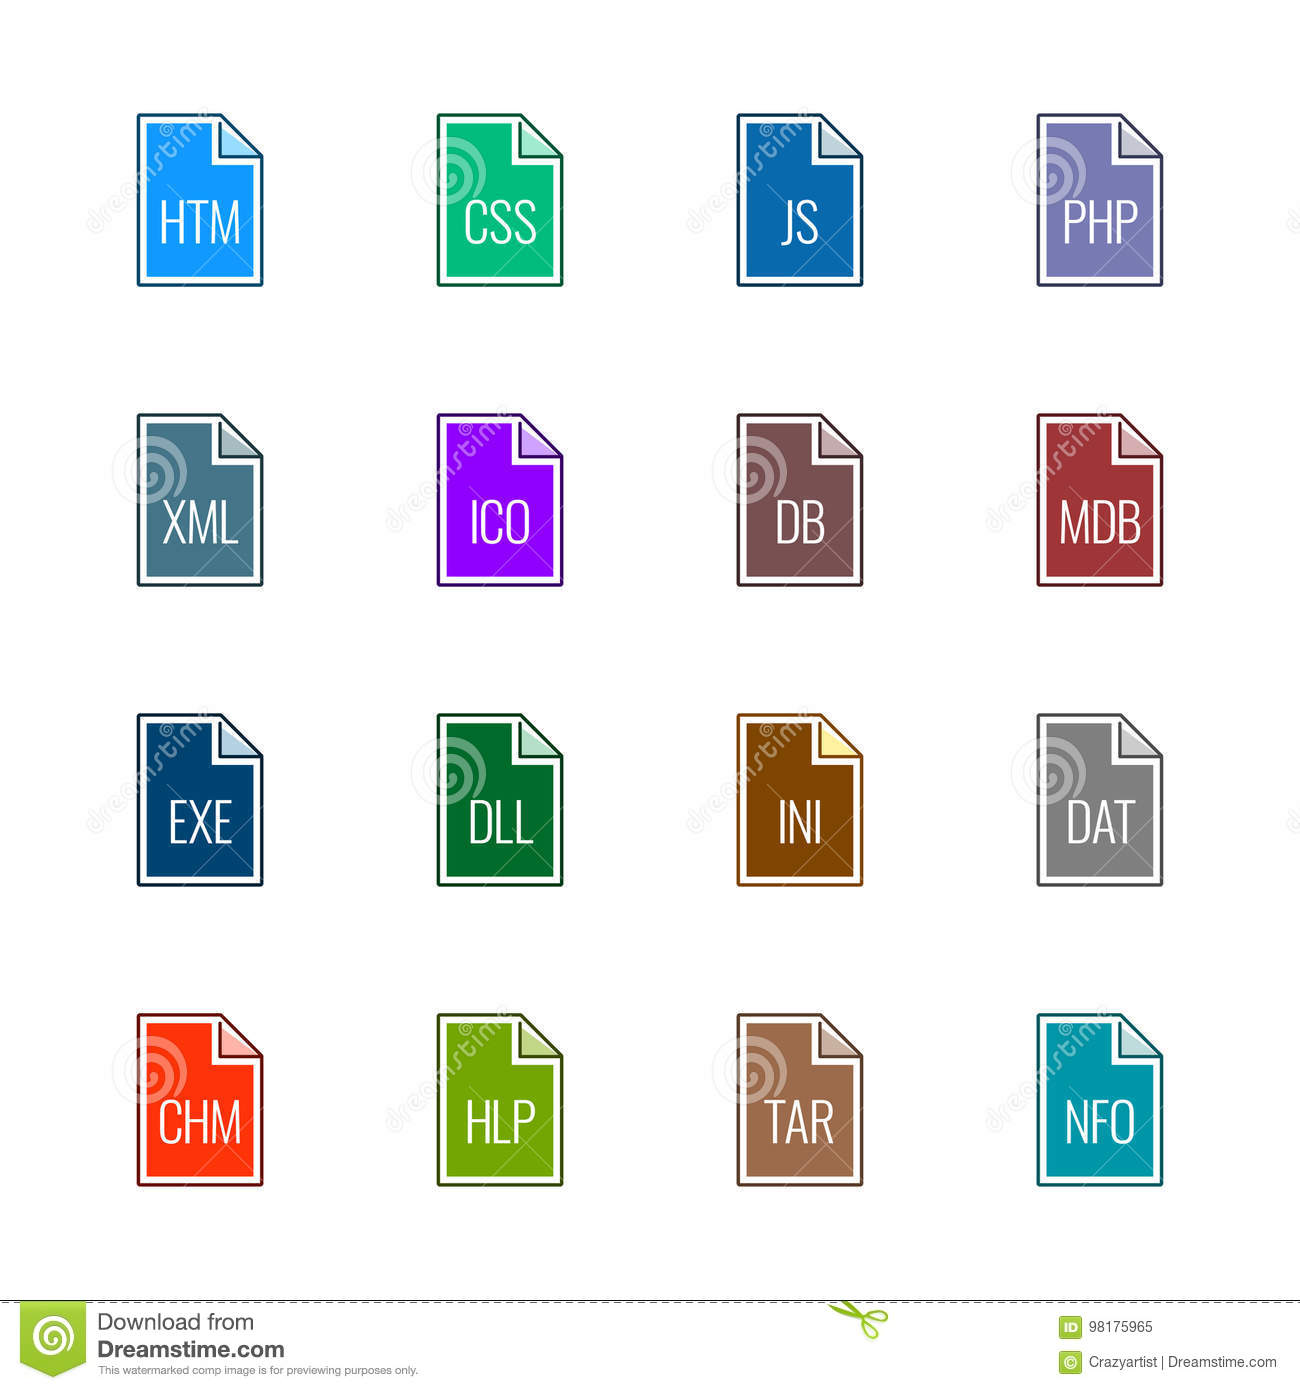 File type icons: Websites and applications - Linne UL Color